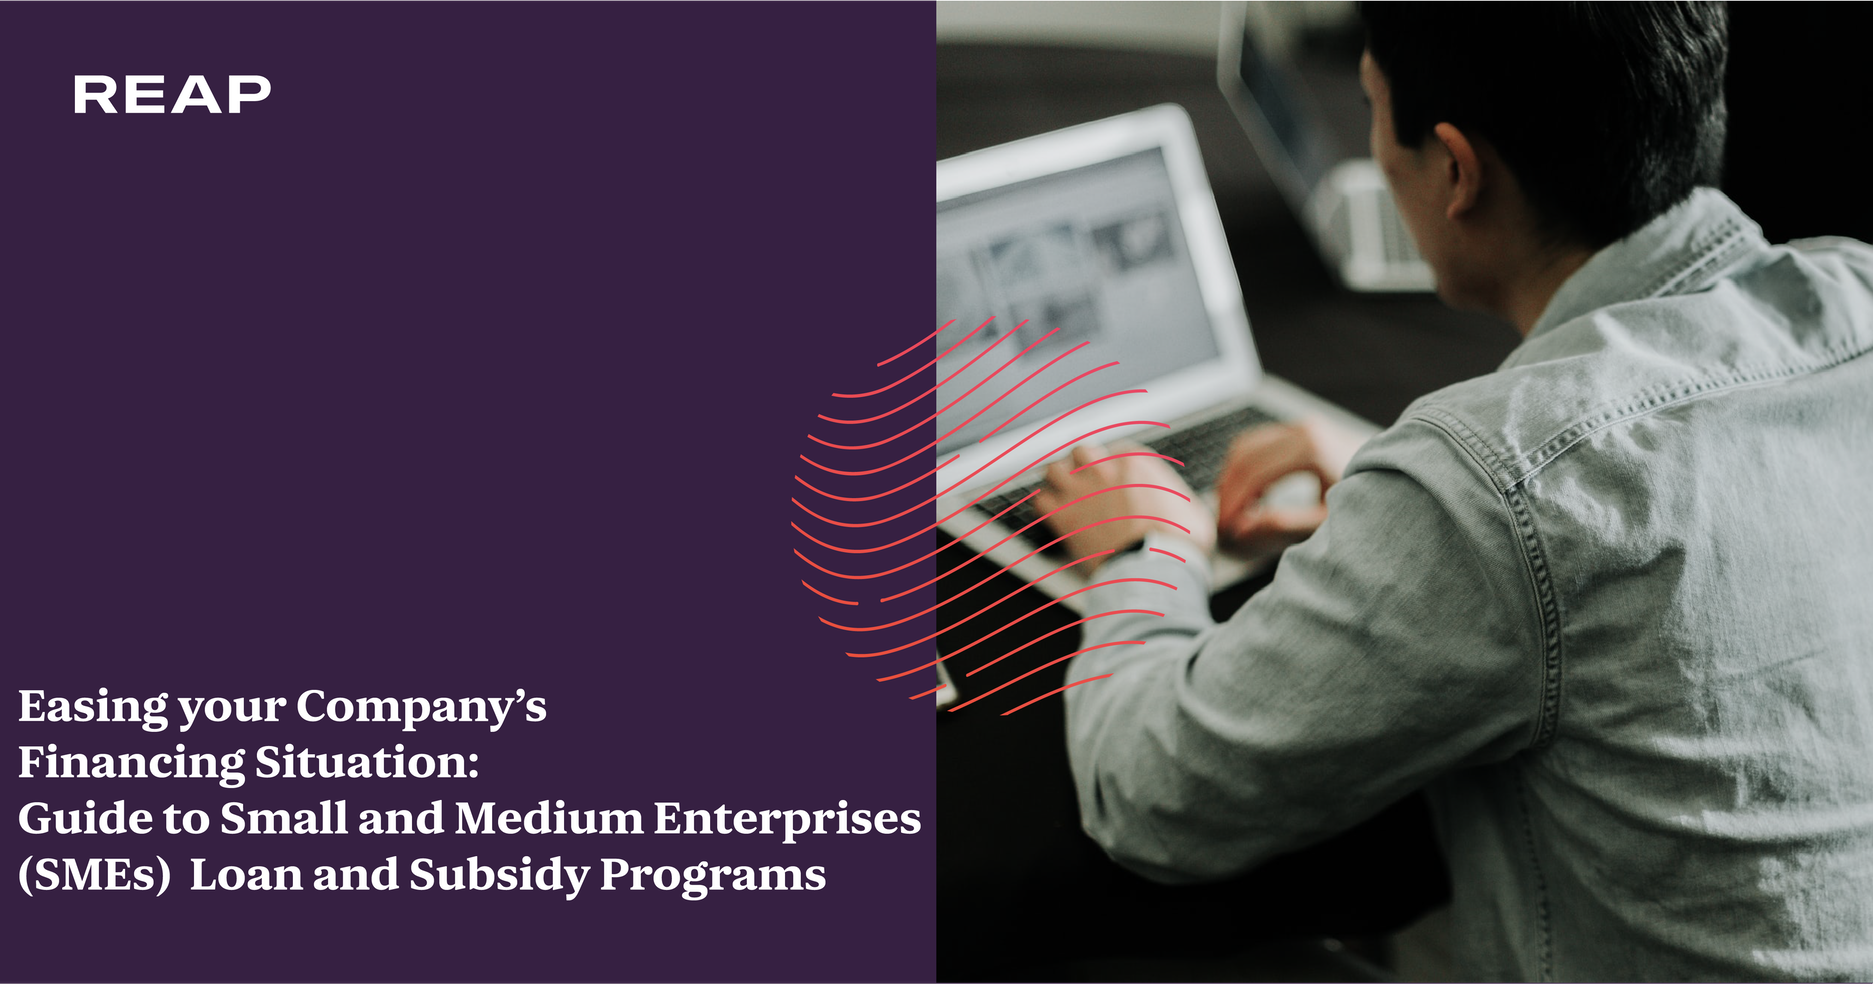 Cover Image for Easing your Company's Financing Situation: Guide to Small and Medium Enterprises (SMEs) Loan and Subsidy Programs